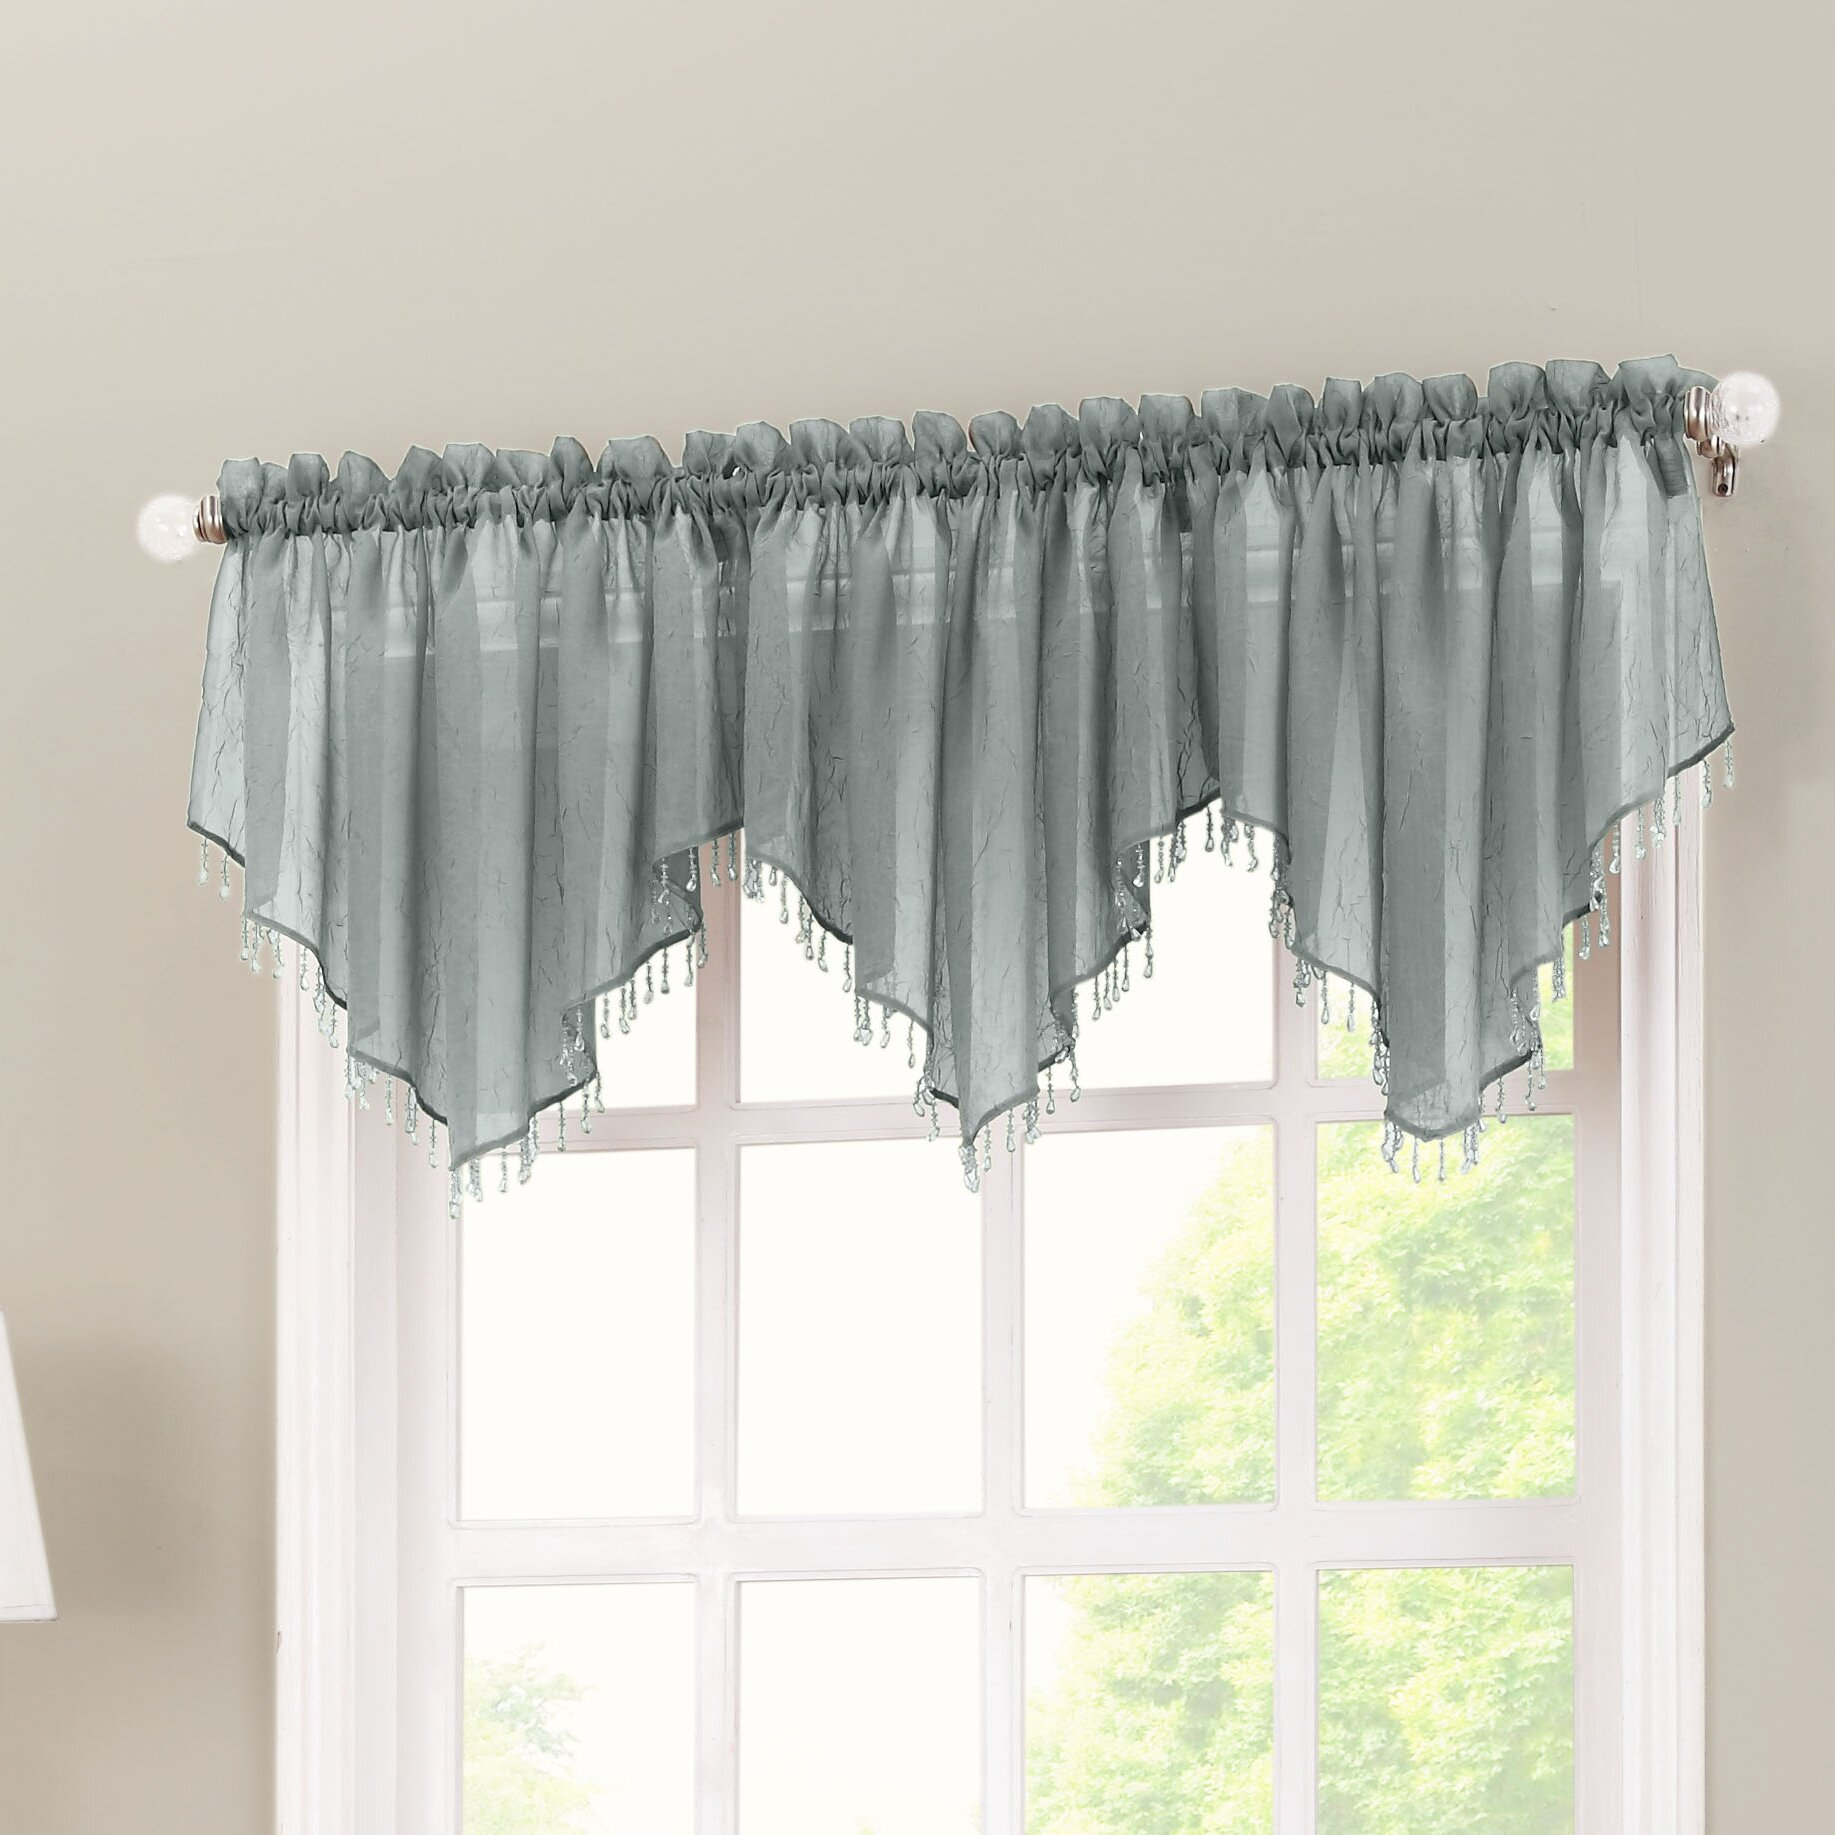 No 918 Crushed Sheer Voile 51 Curtain Valance Amp Reviews